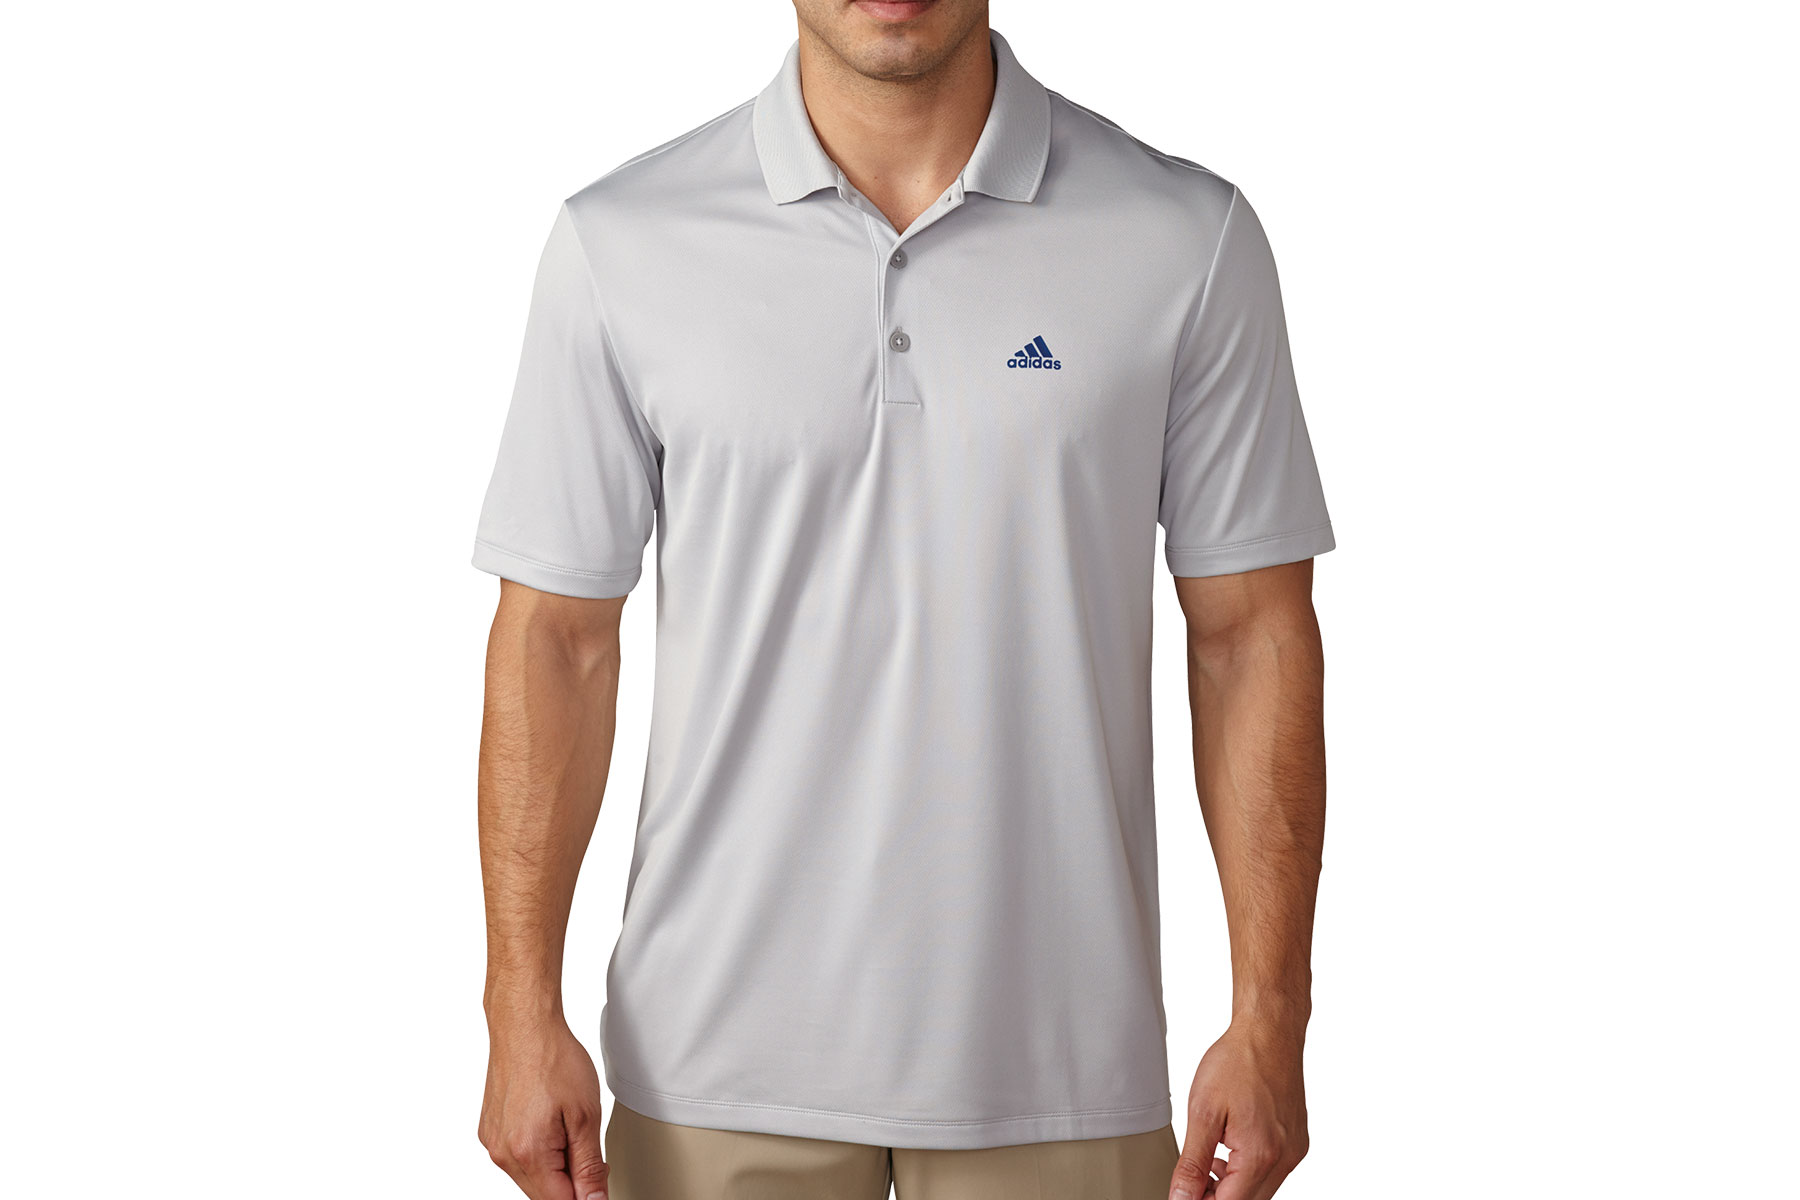 adidas golf performance polo shirt from american golf. Black Bedroom Furniture Sets. Home Design Ideas